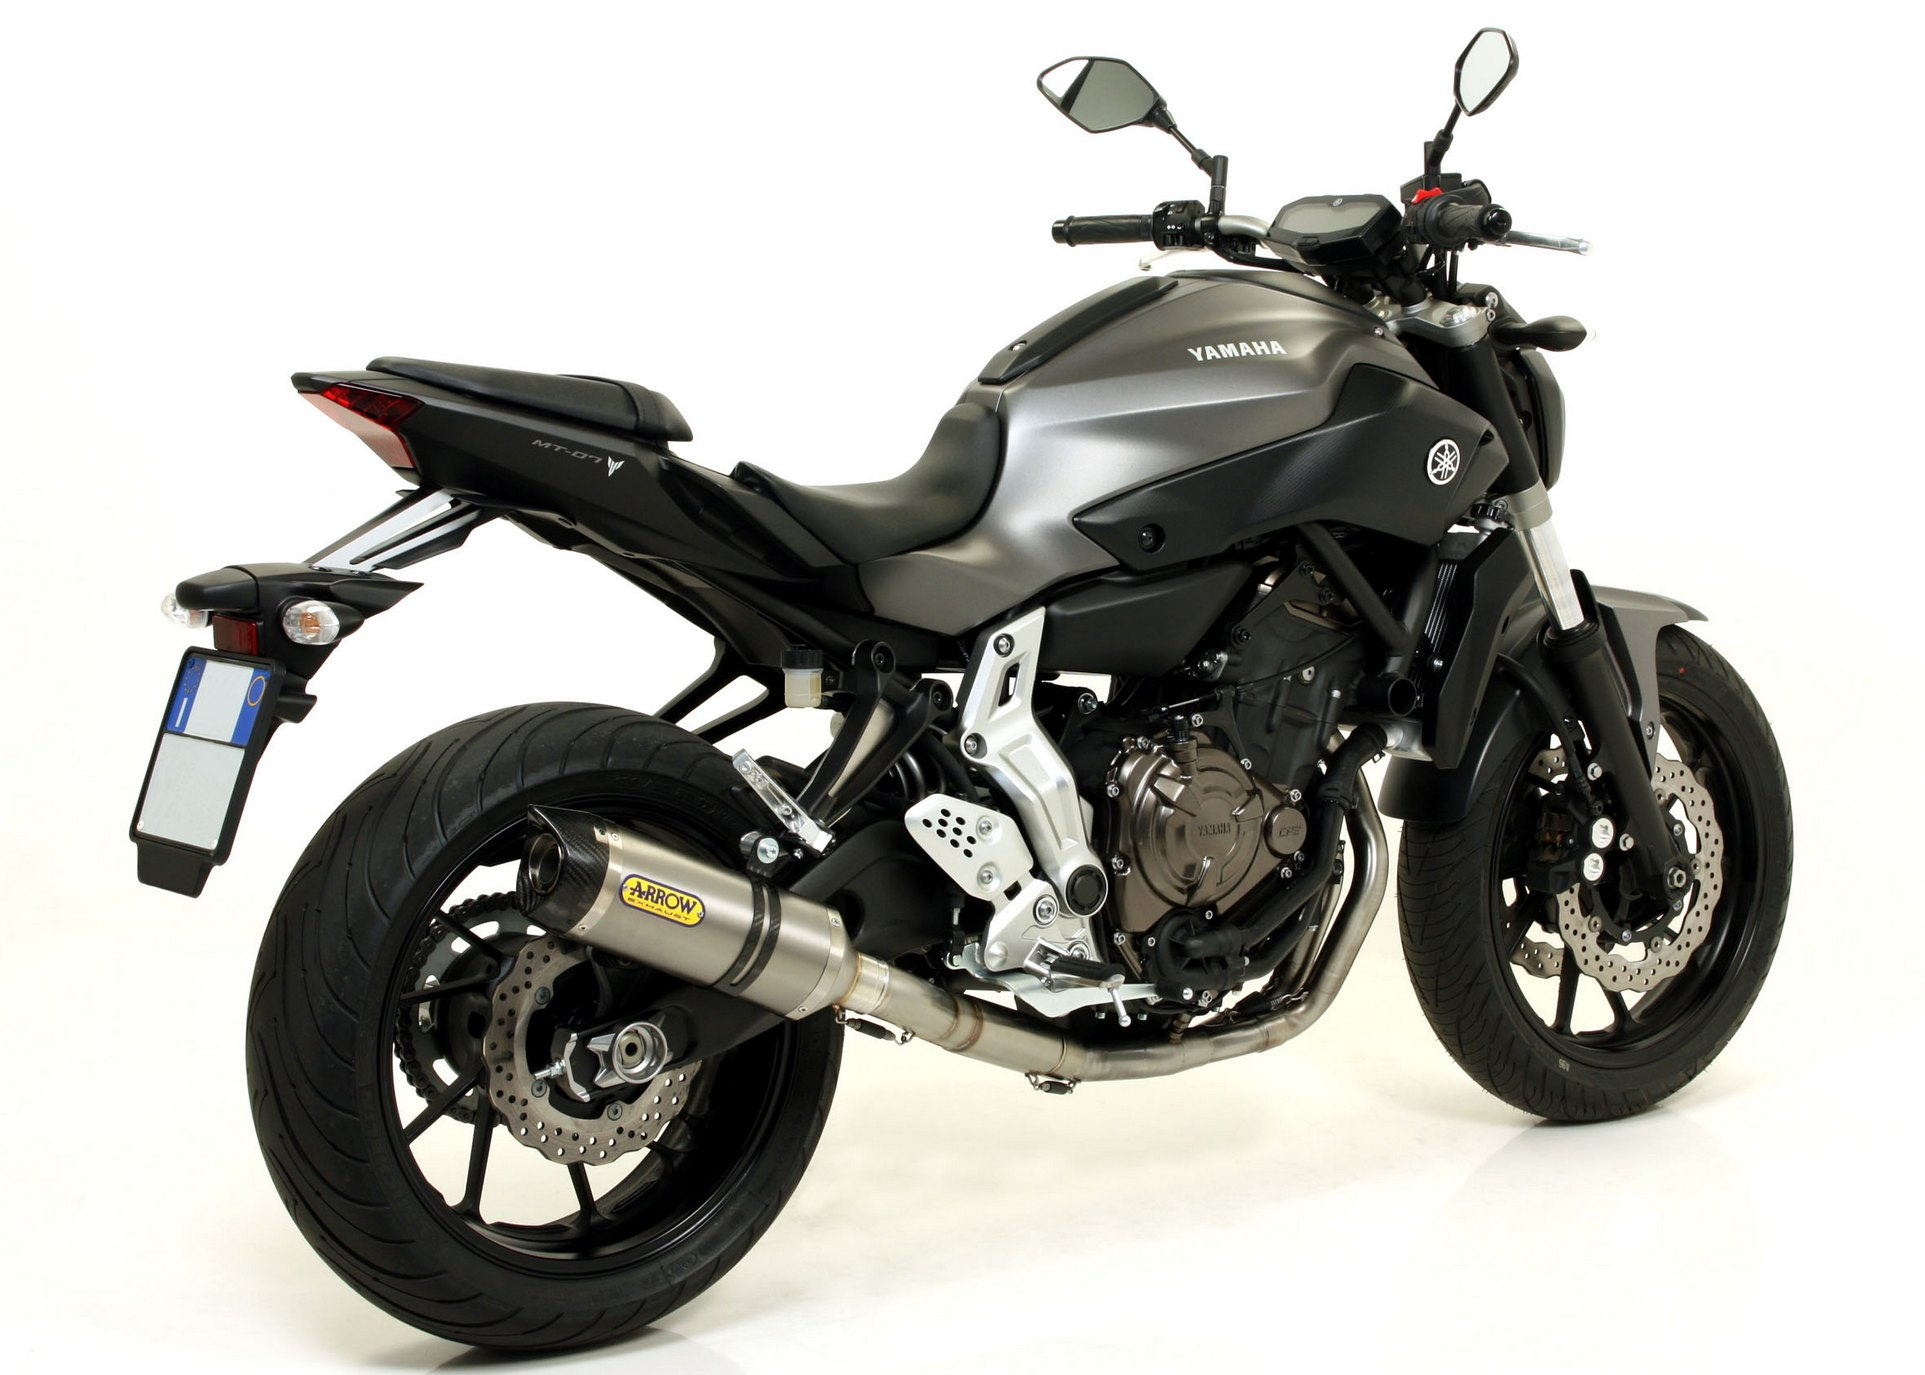 2014 yamaha mt 07 receives arrow exhaust upgrades autoevolution. Black Bedroom Furniture Sets. Home Design Ideas